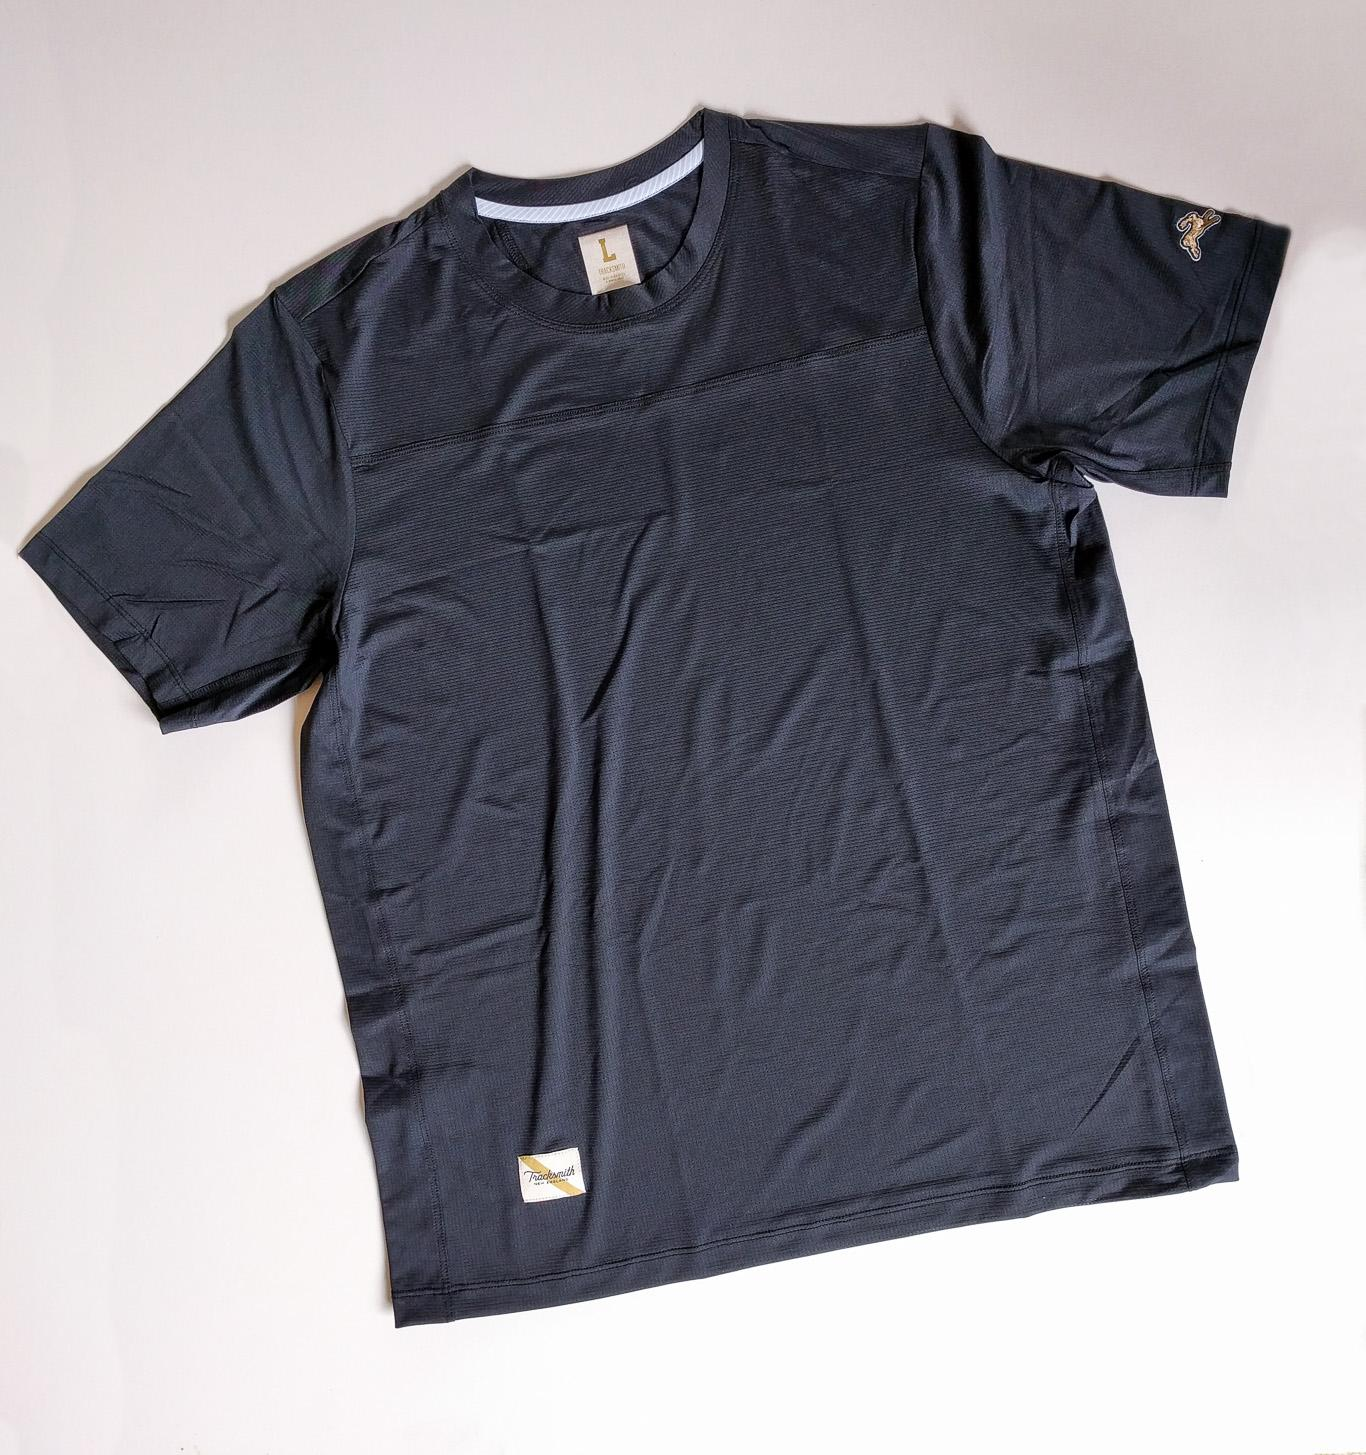 Tracksmith Twilight Tee